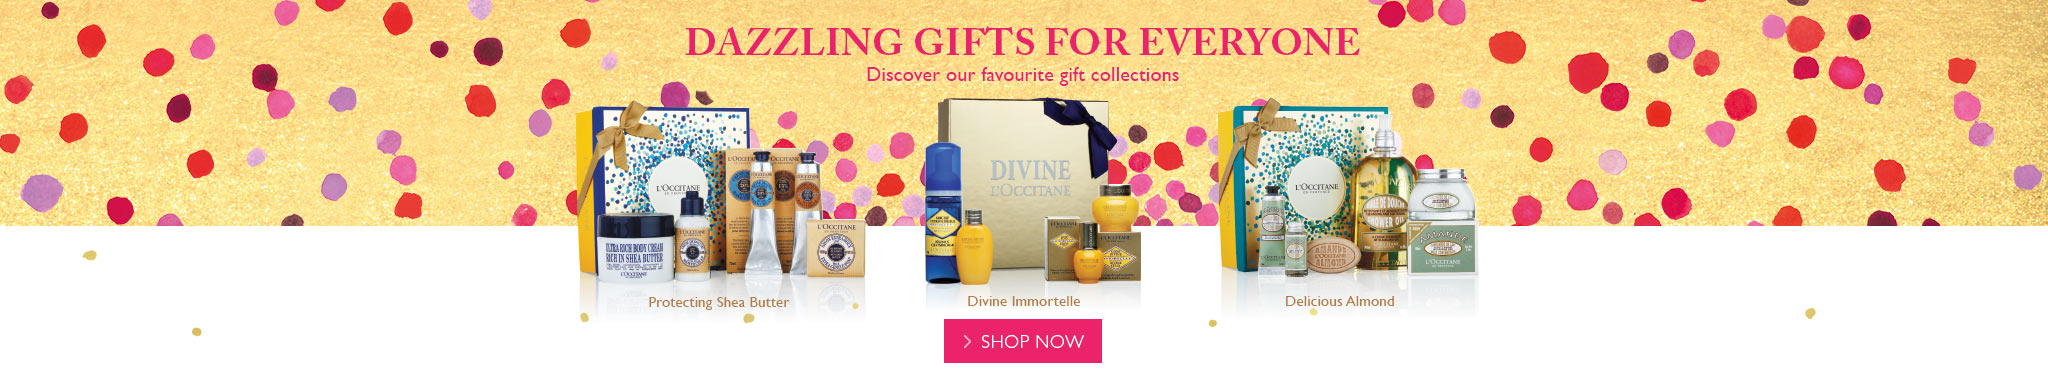 Dazzling gifts to delight